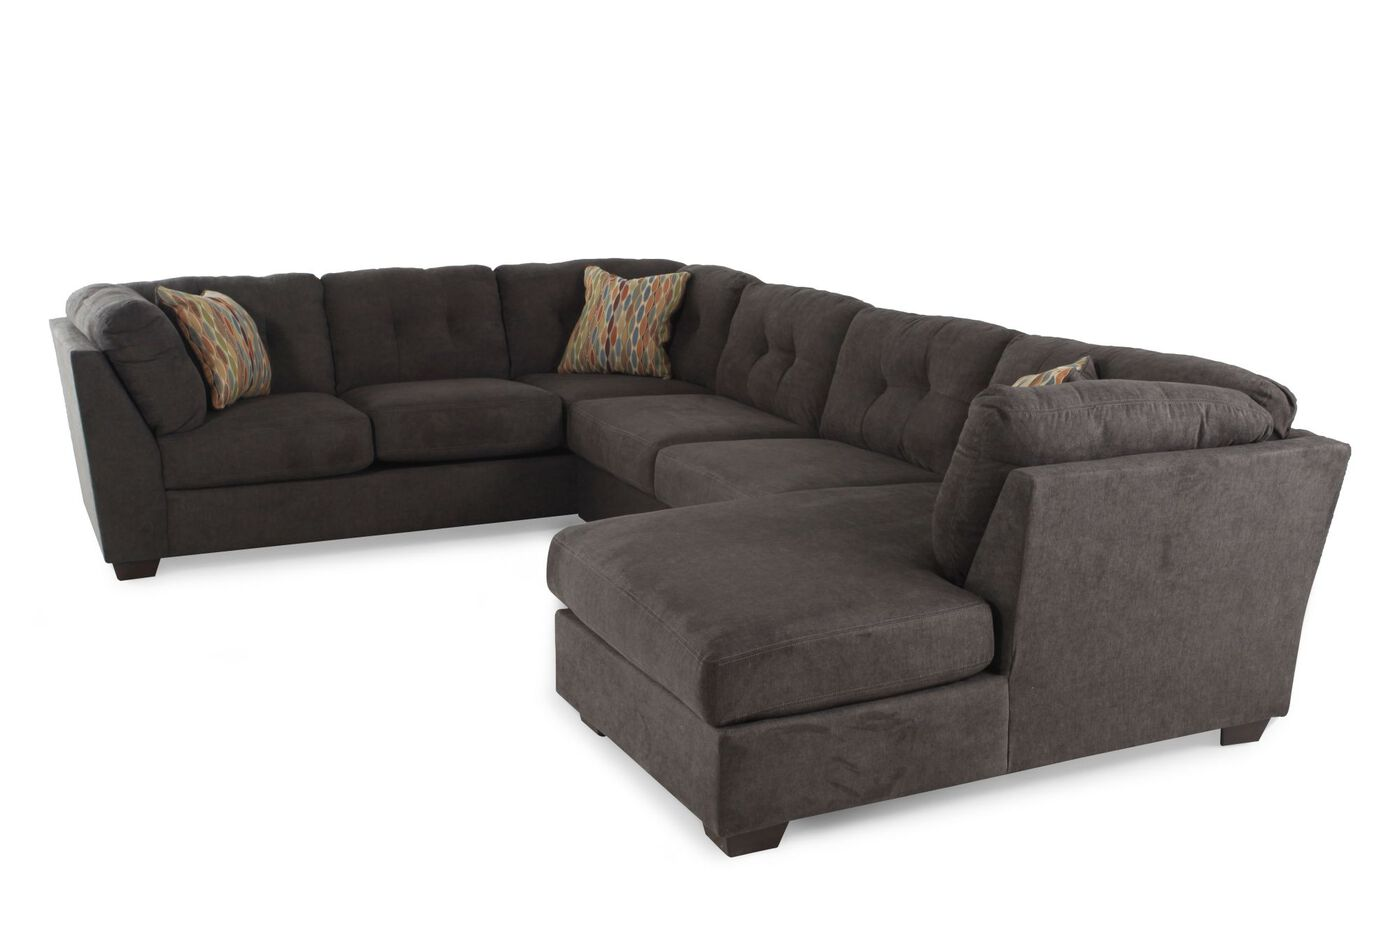 Three piece microfiber sectional in chocolate brown for 3 piece microfiber recliner sectional sofa